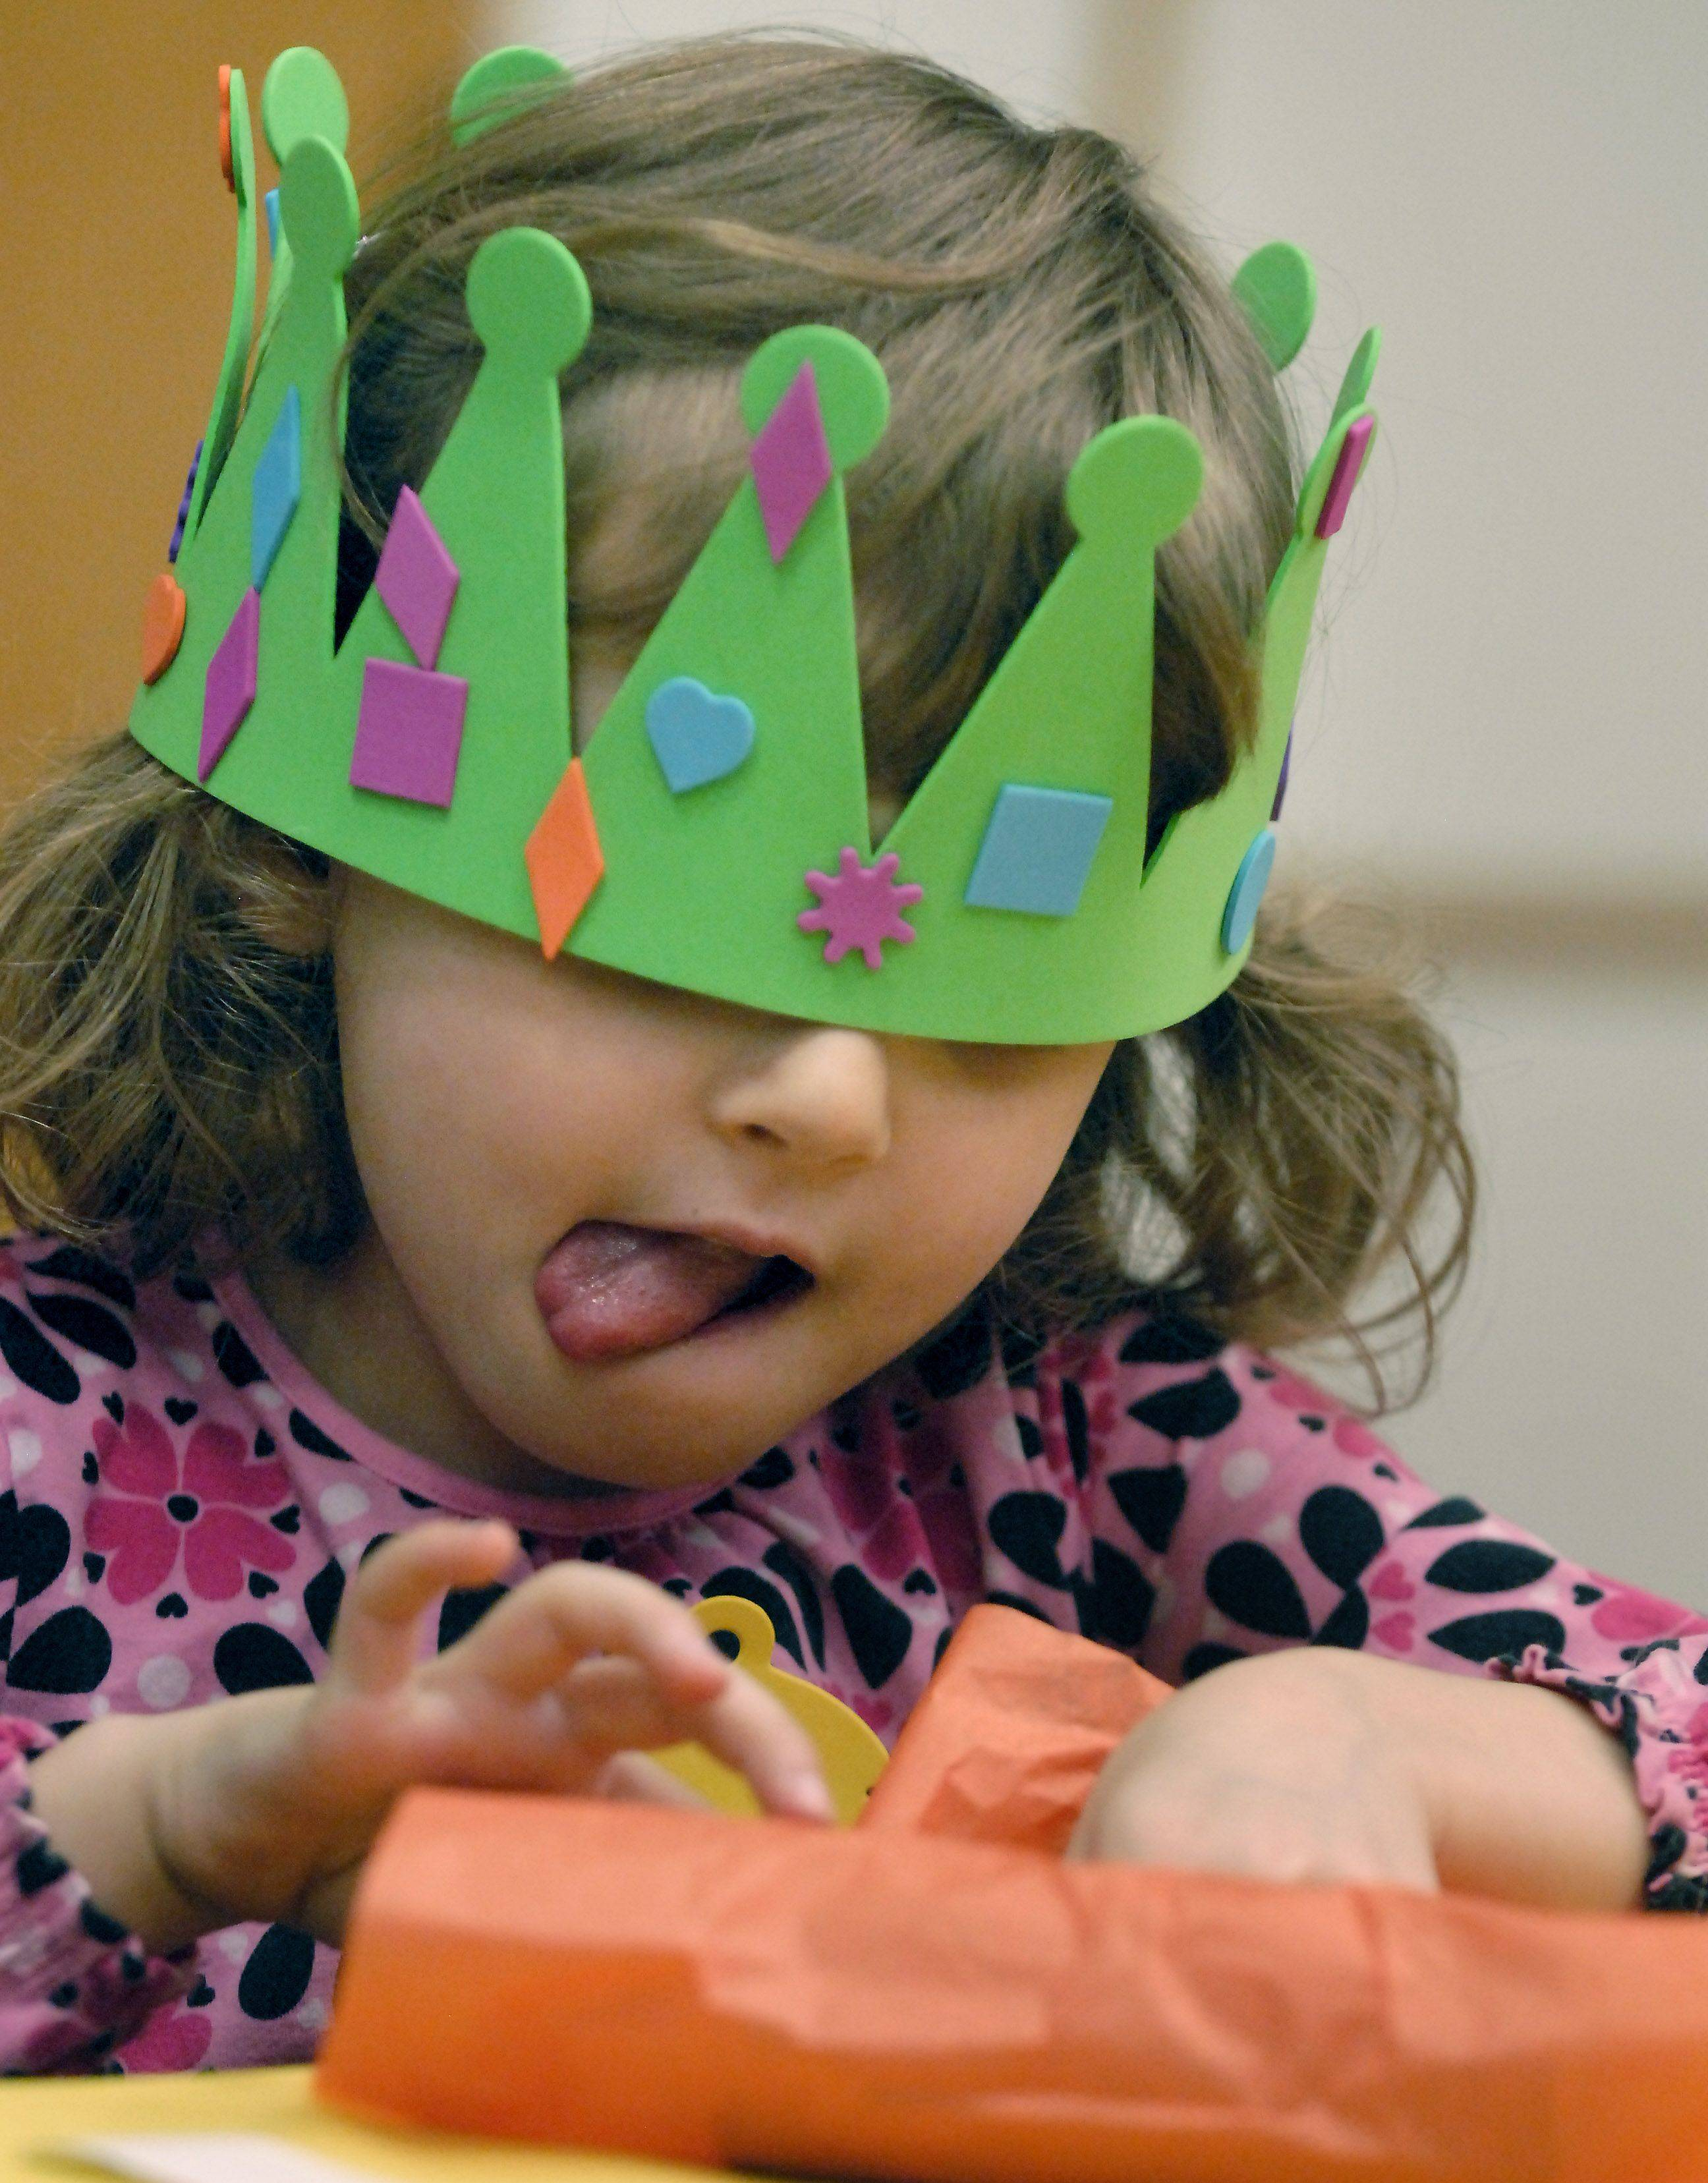 Wearing a king-size crown Rachel Rabe, 4, of Arlington Heights works on her noisemaker during the Almost New Year's party Friday at the Arlington Heights Memorial Library.